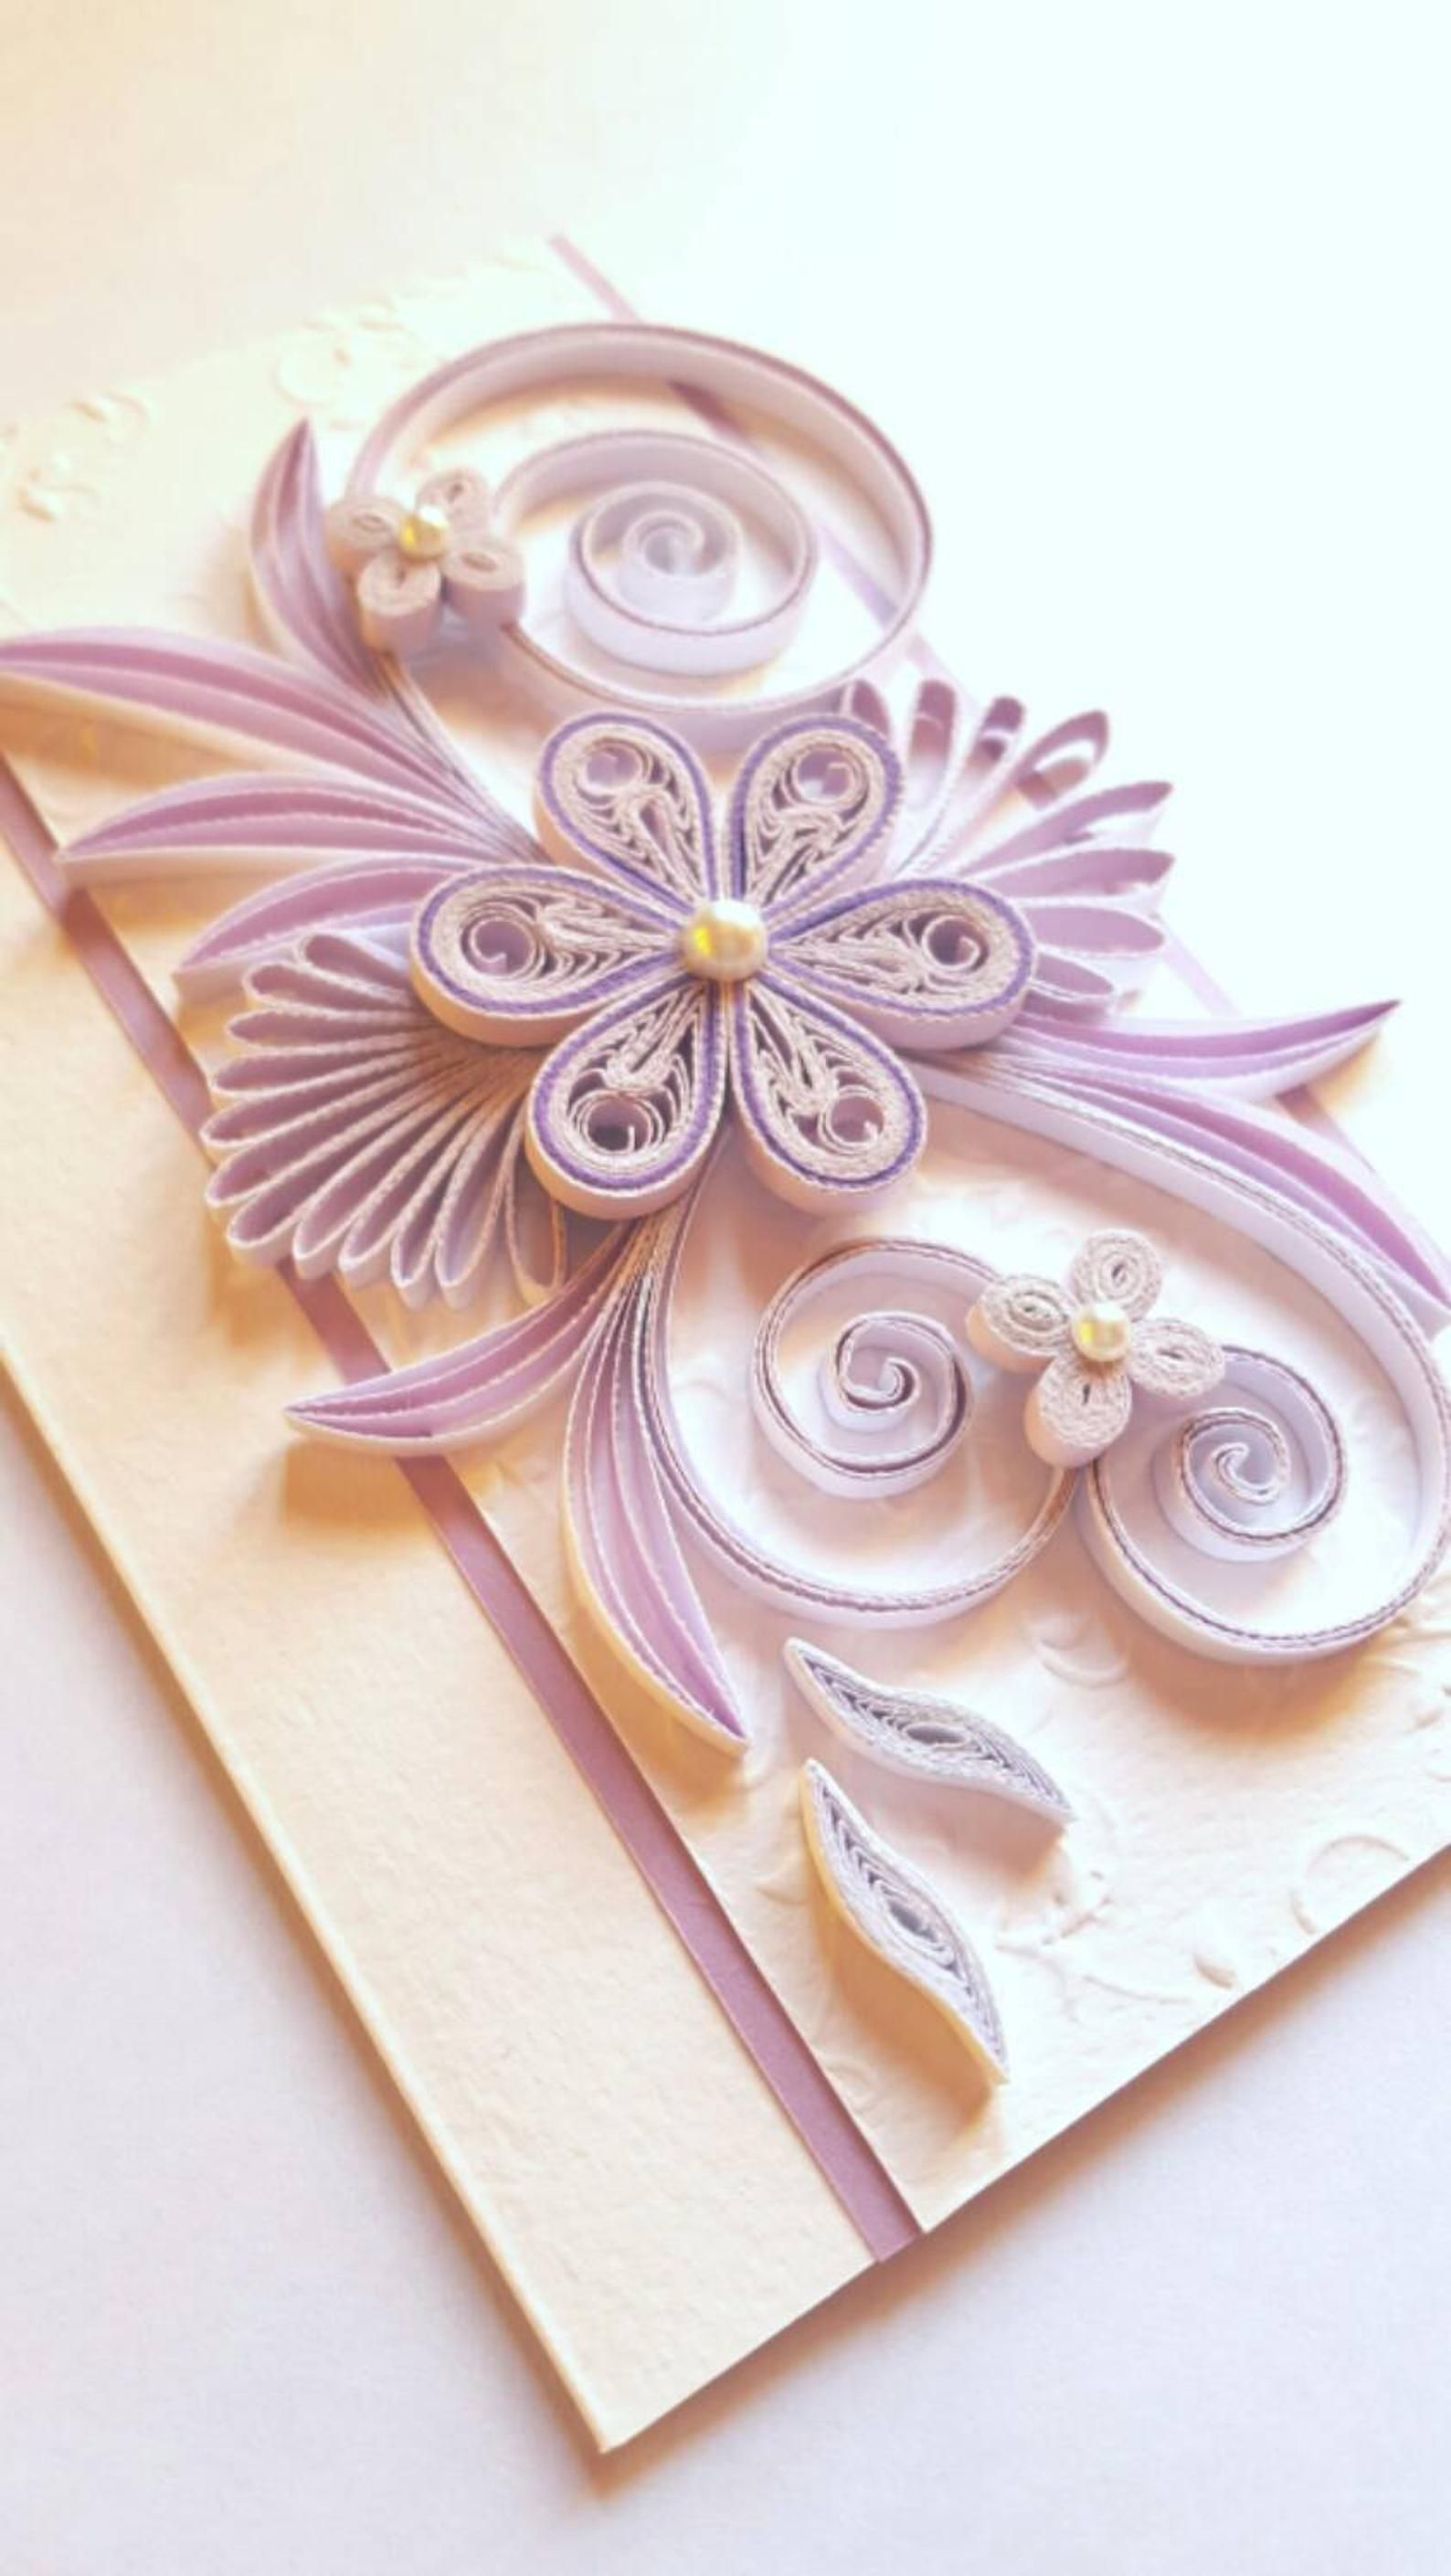 Elegant Handmade Birthday Card Flowers Design Quilling